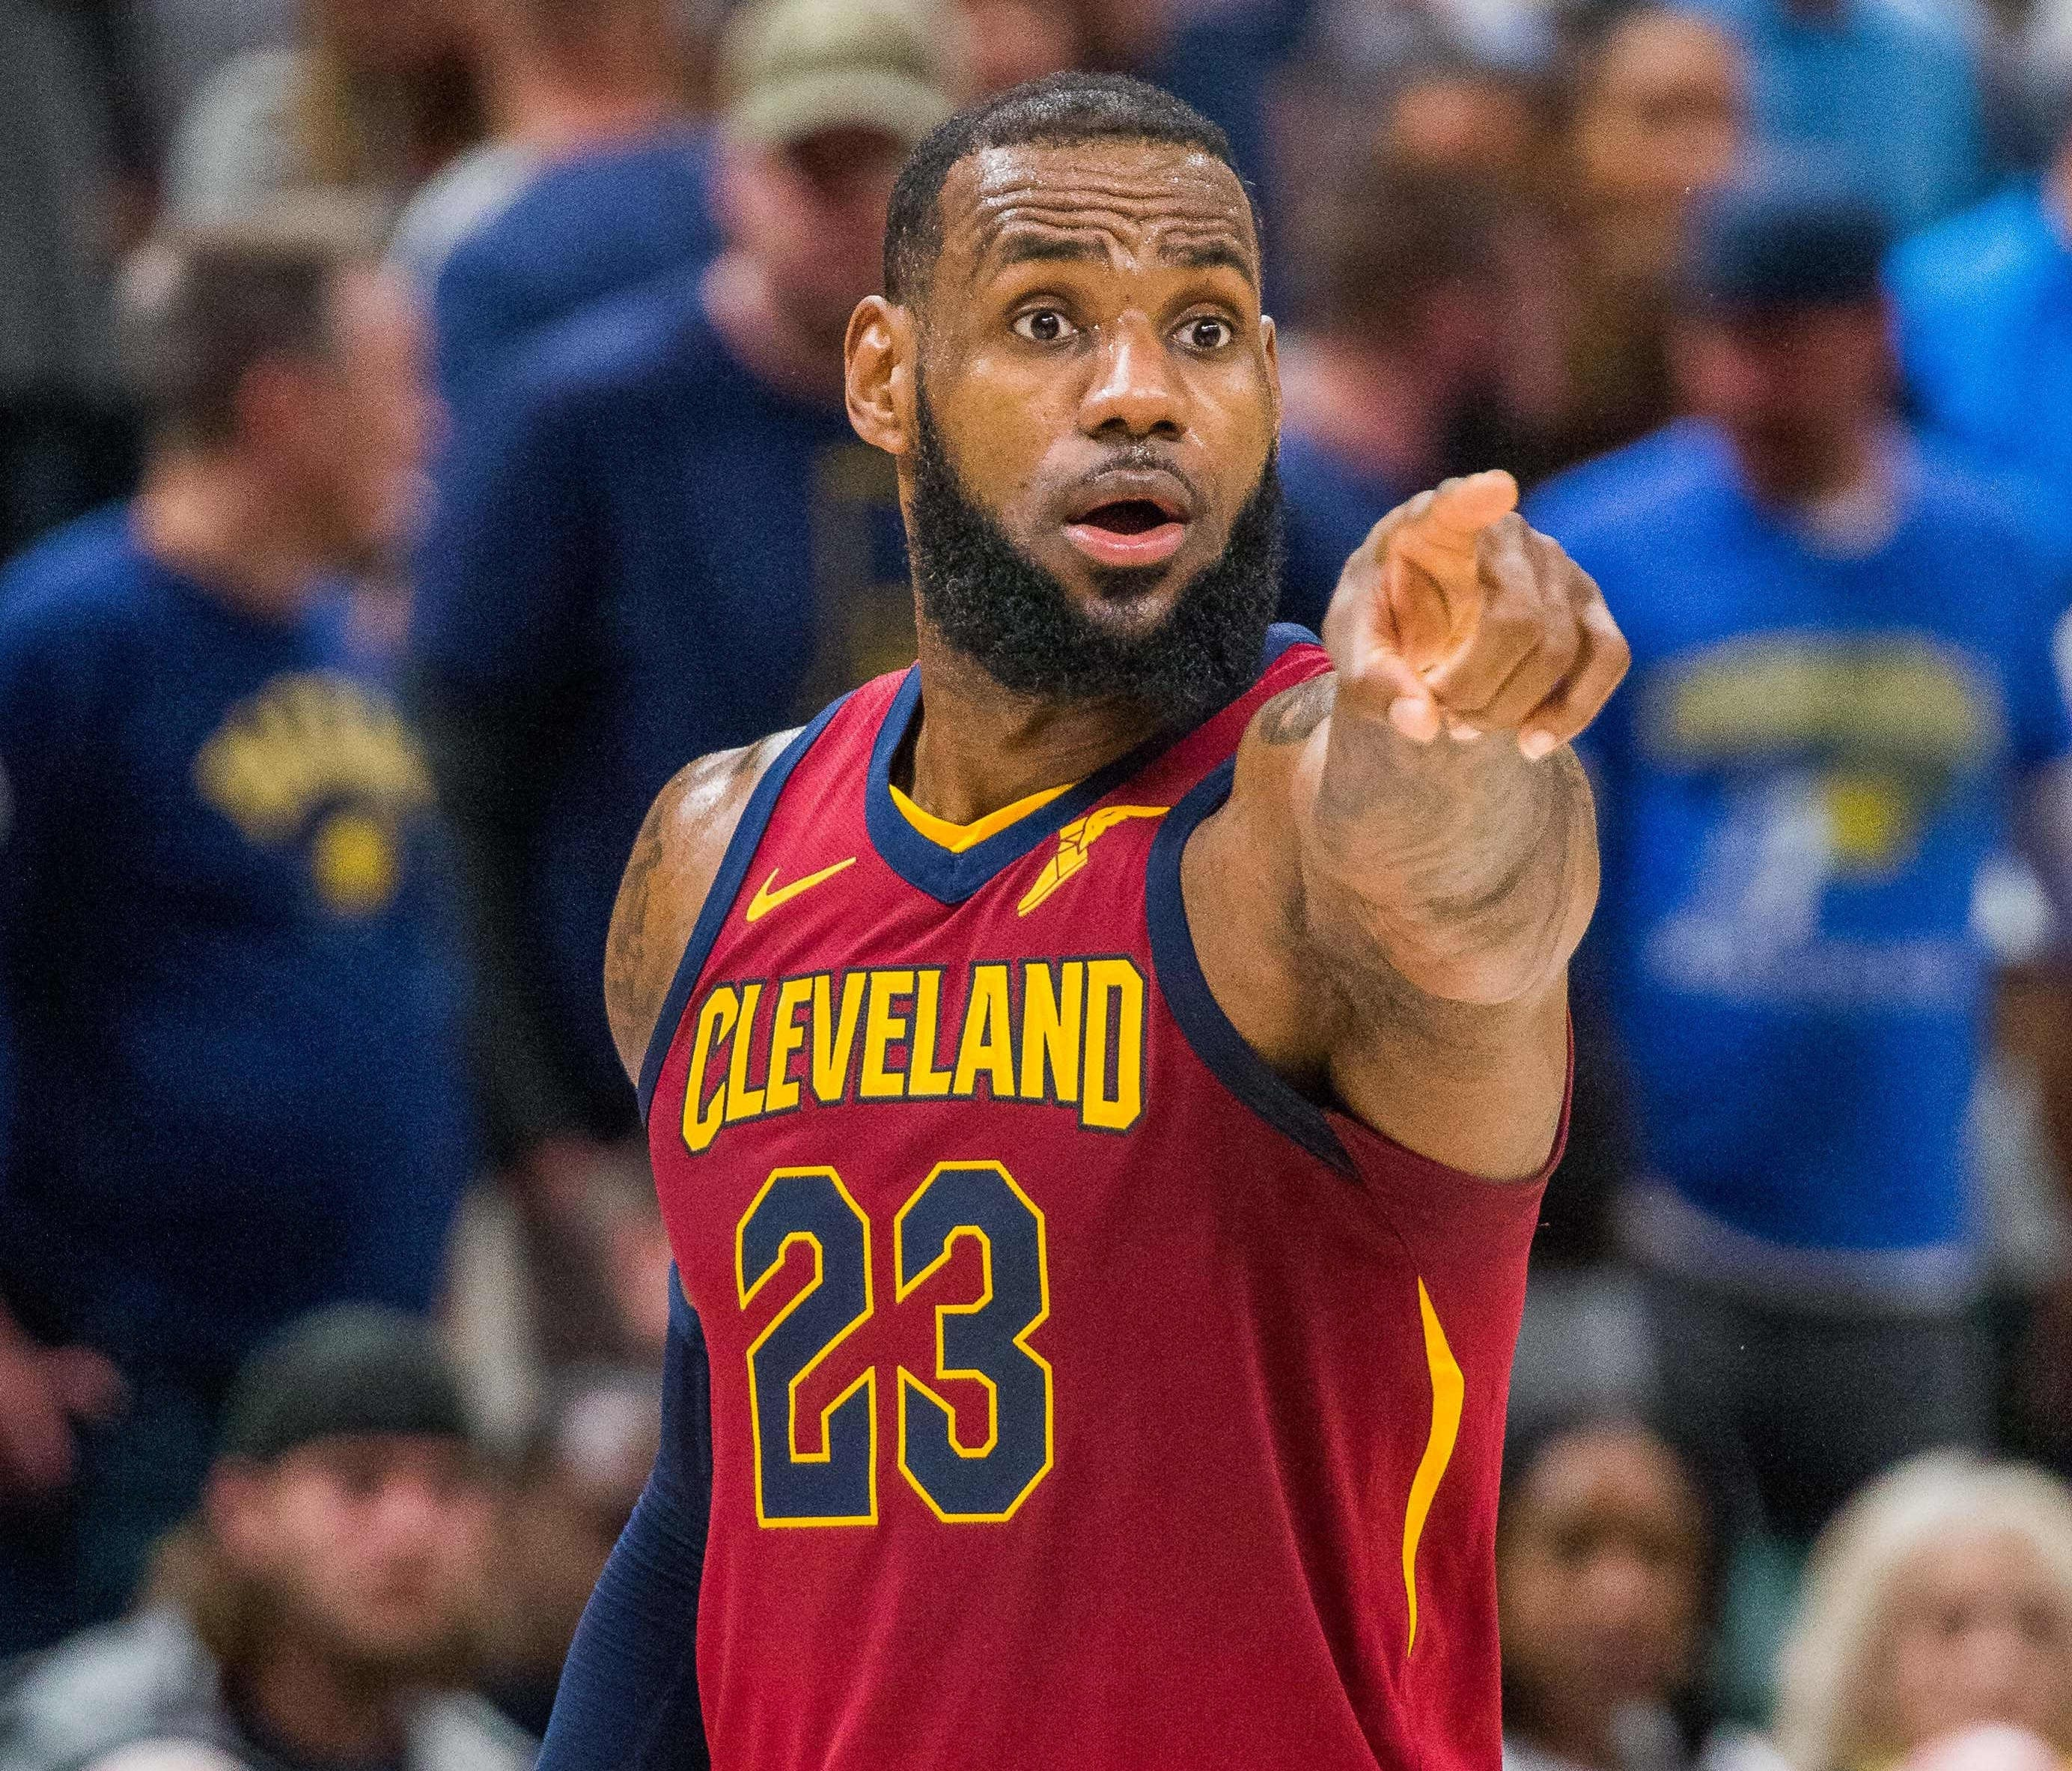 LeBron James is leaving Cleveland for a second time.